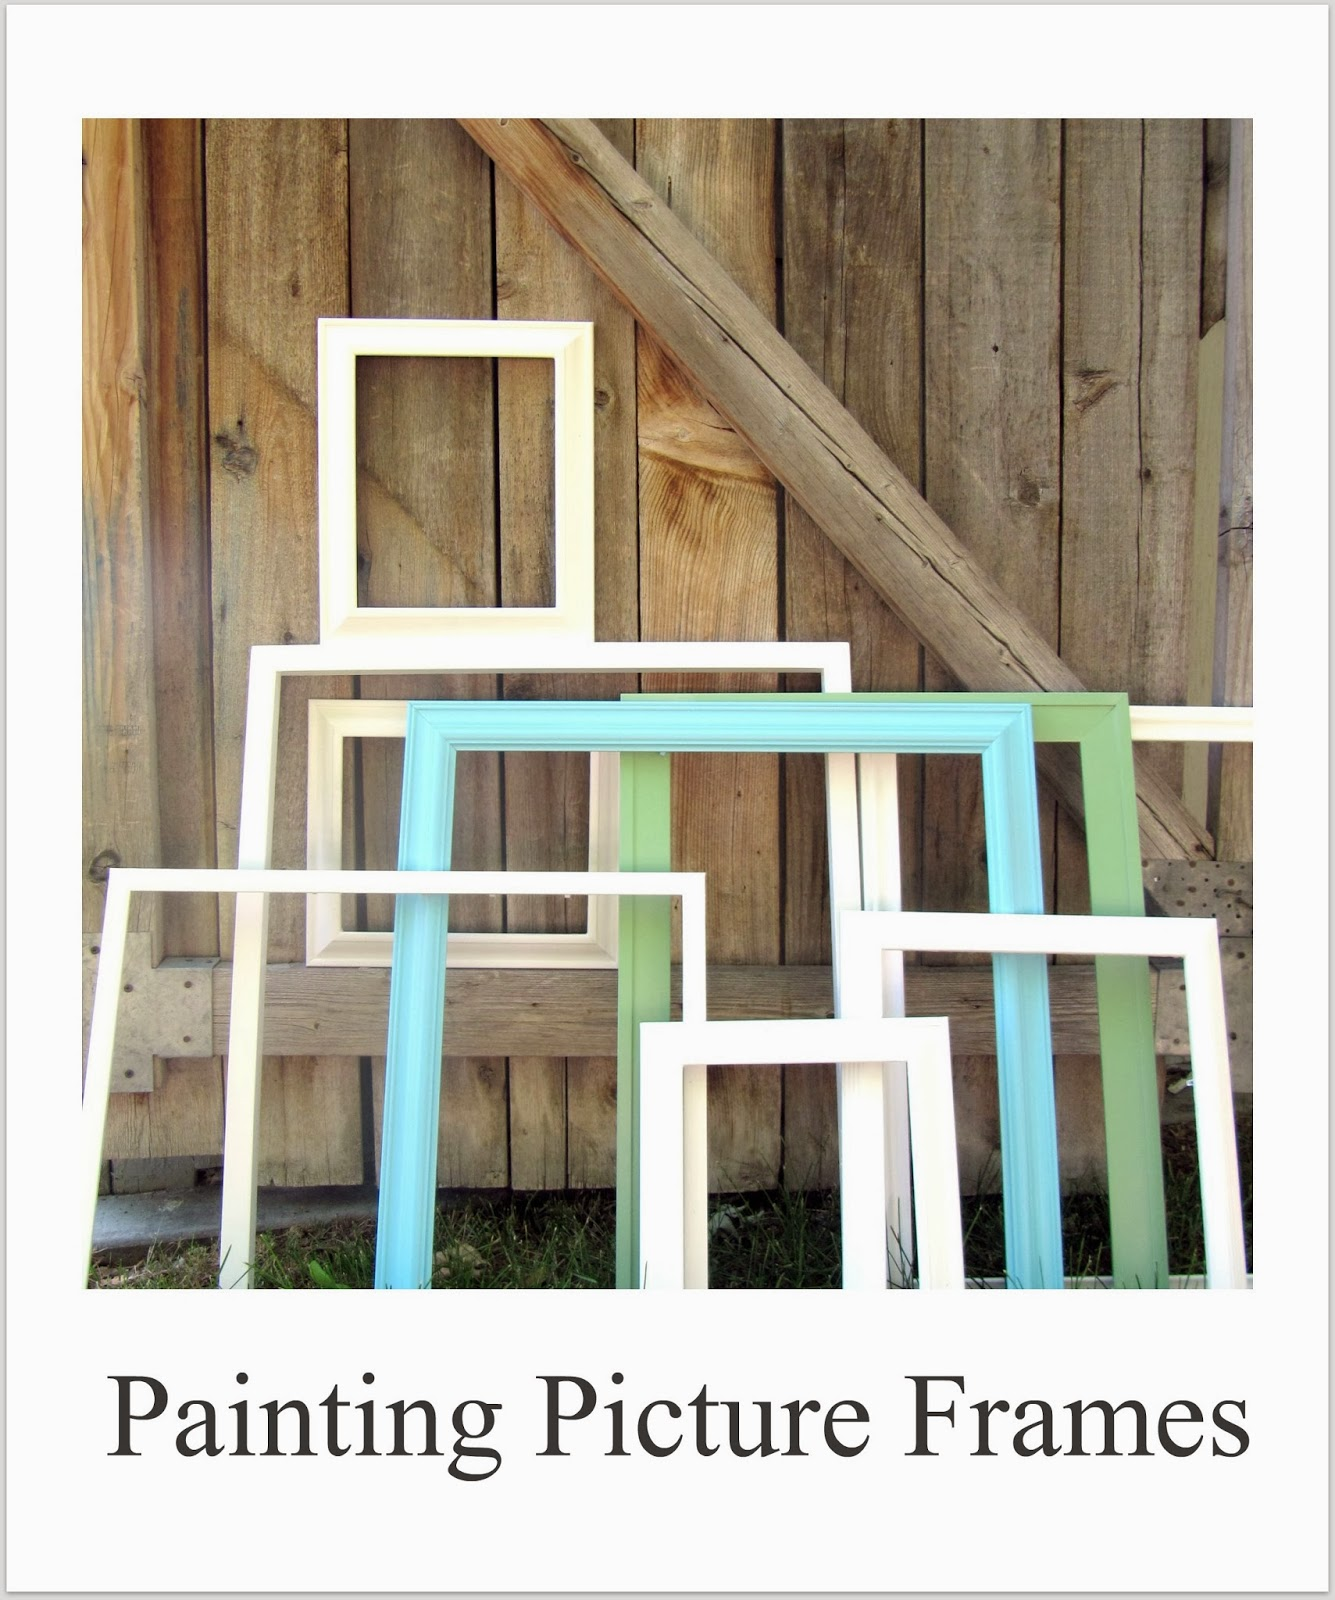 http://thewickerhouse.blogspot.com/2011/06/painting-picture-frames-picture-gallery.html